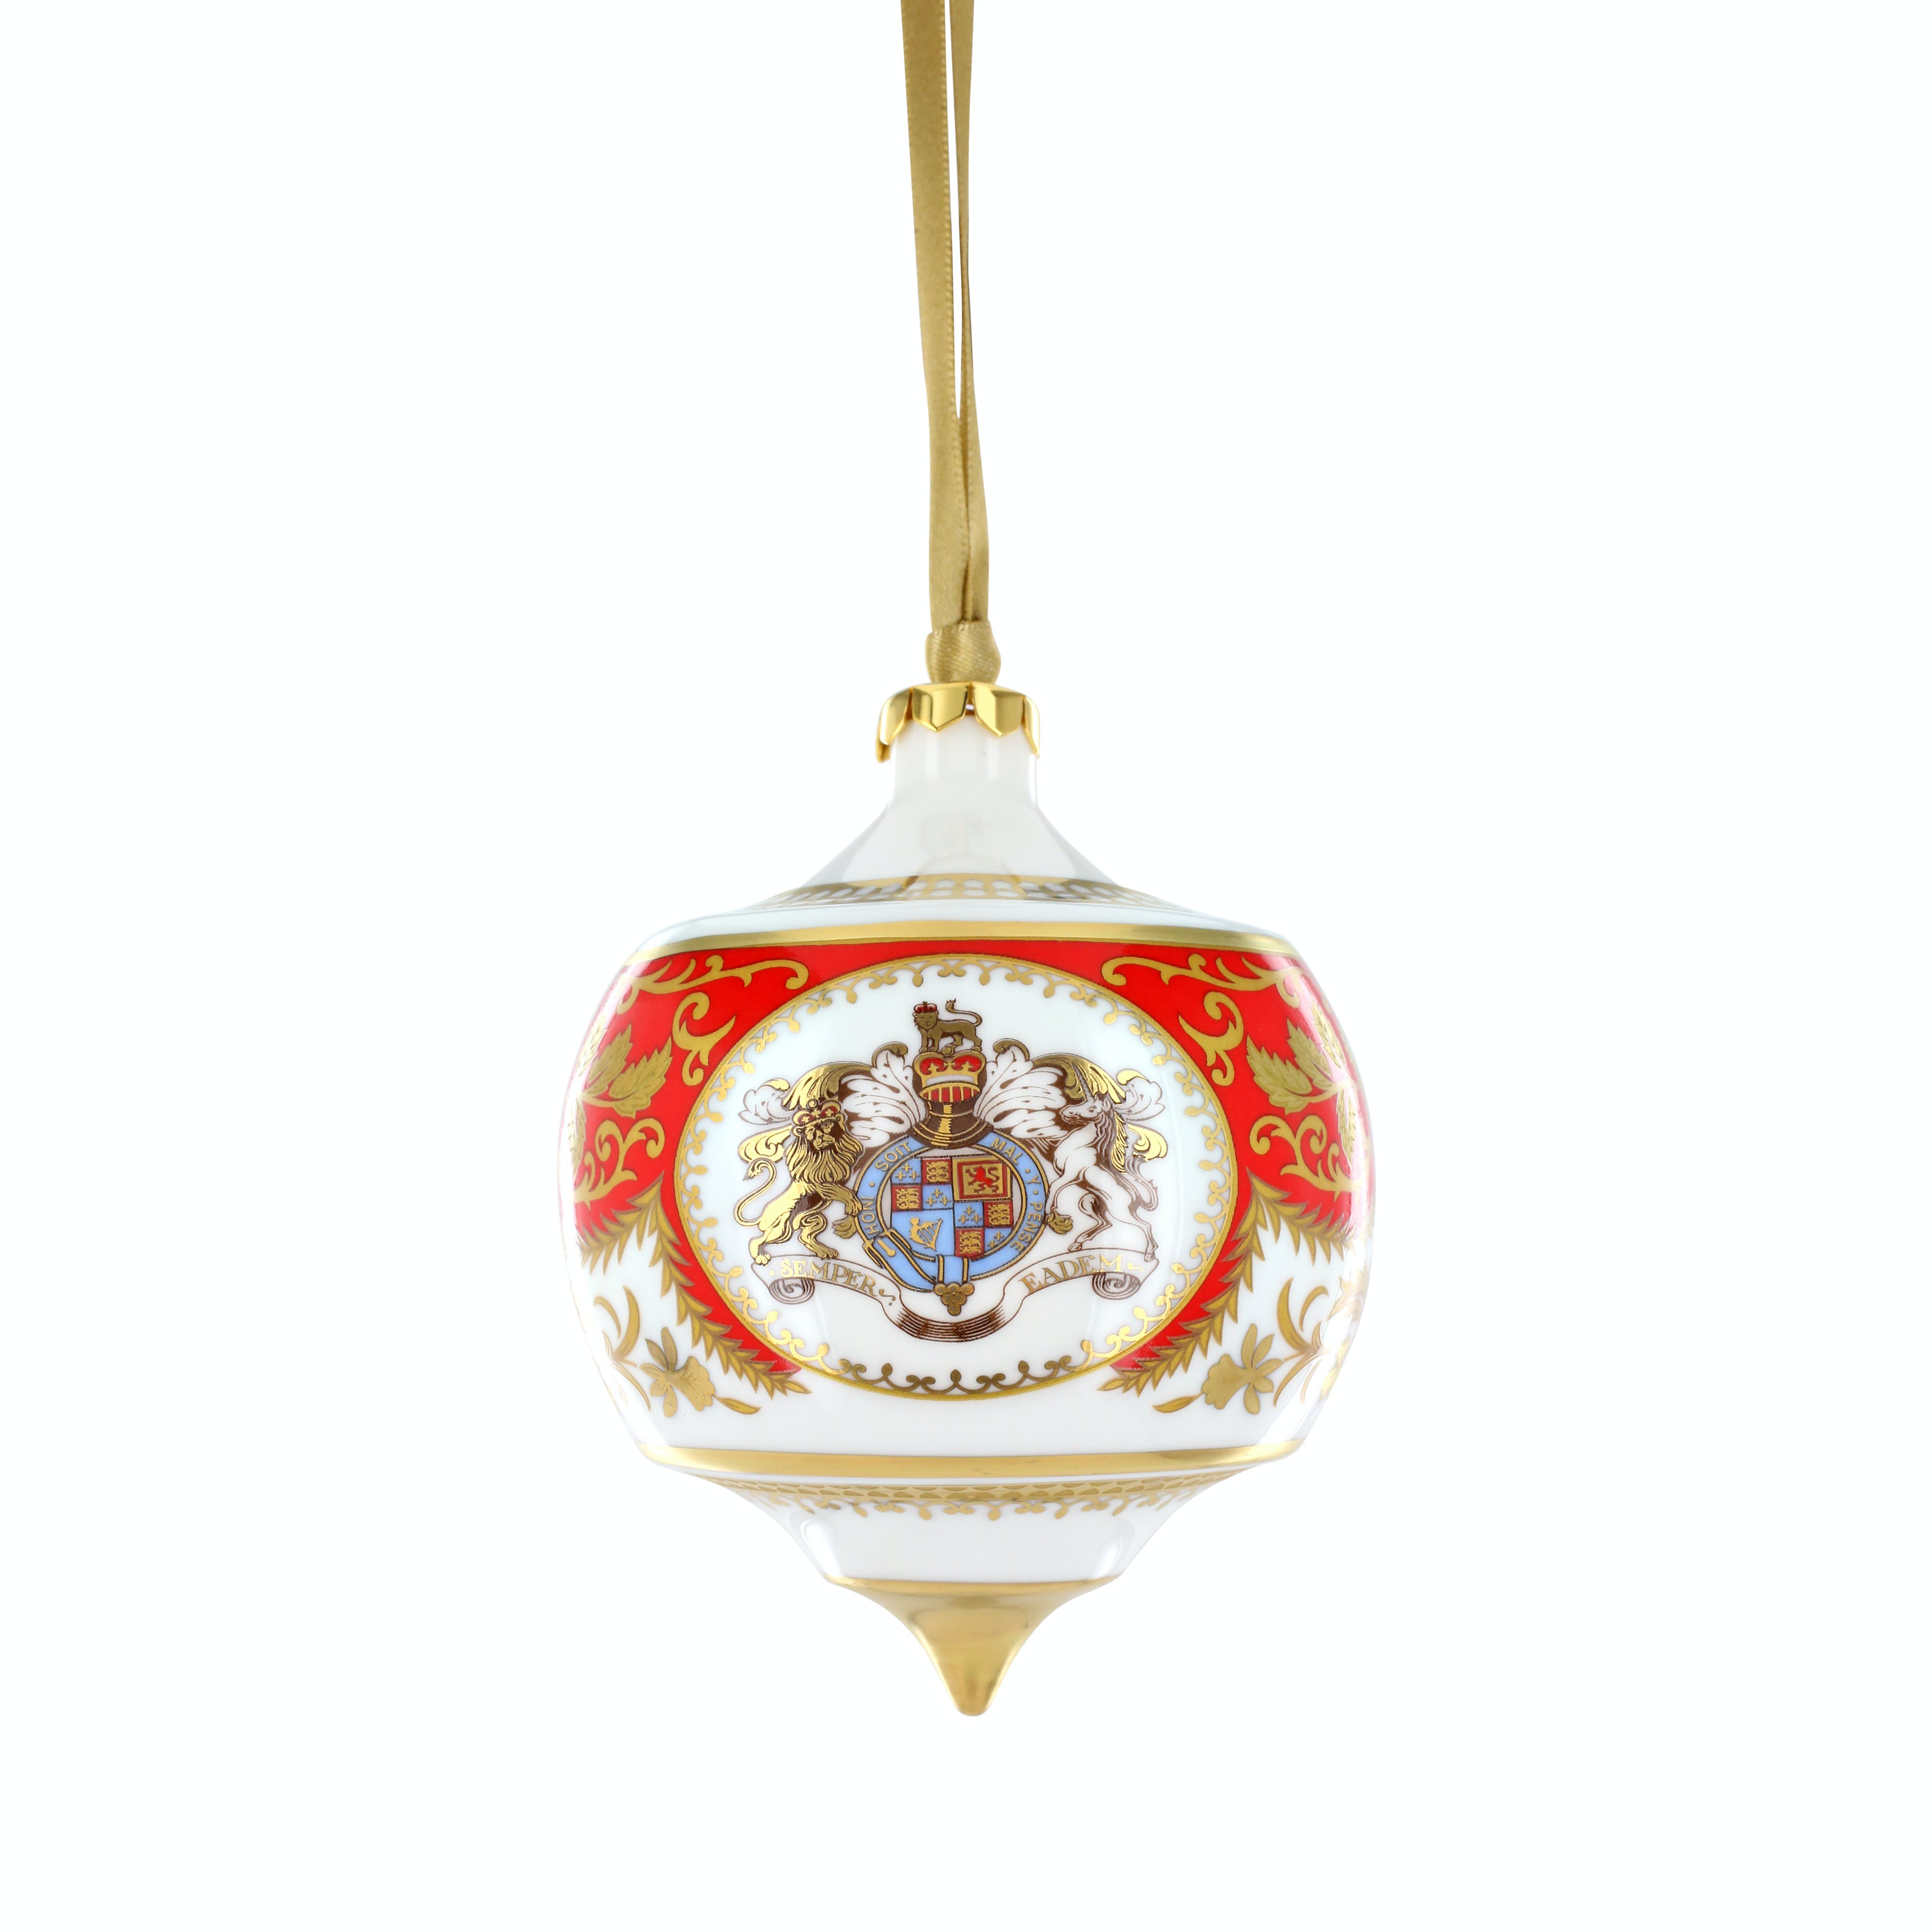 This beautiful ceramic bauble features a Palace Crest design, designed exclusively for Historic Royal Palaces.